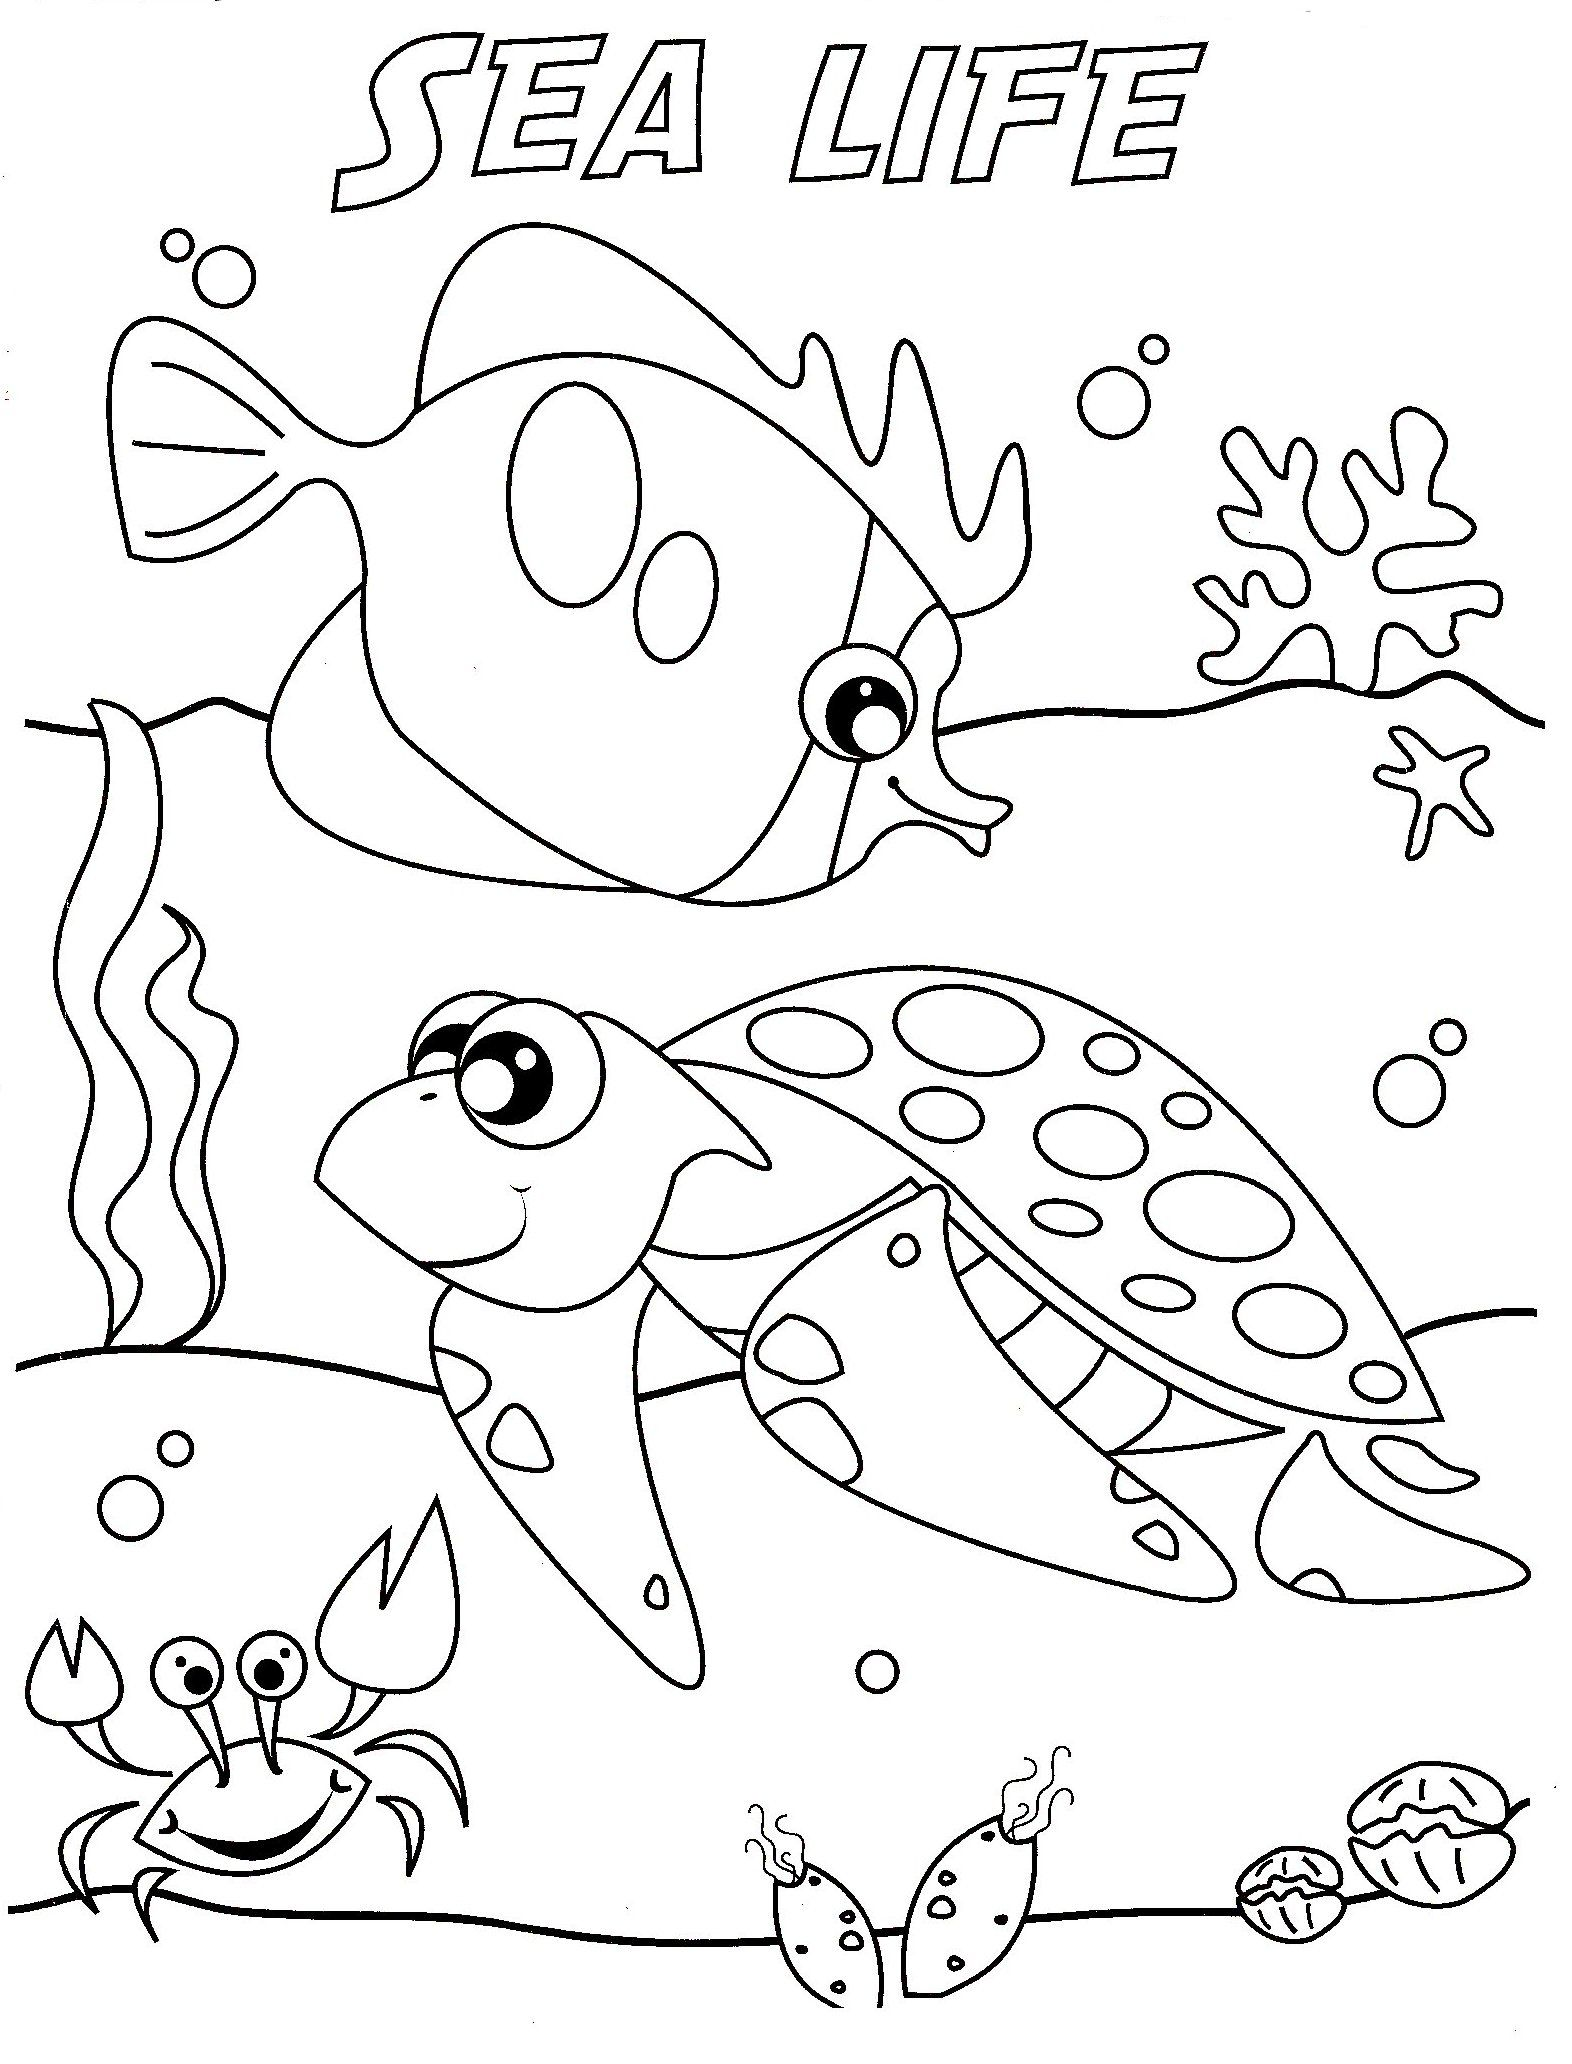 Coloring In The Sea Free Online Printable Pages Sheets For Kids Get Latest Images Favorite To Print